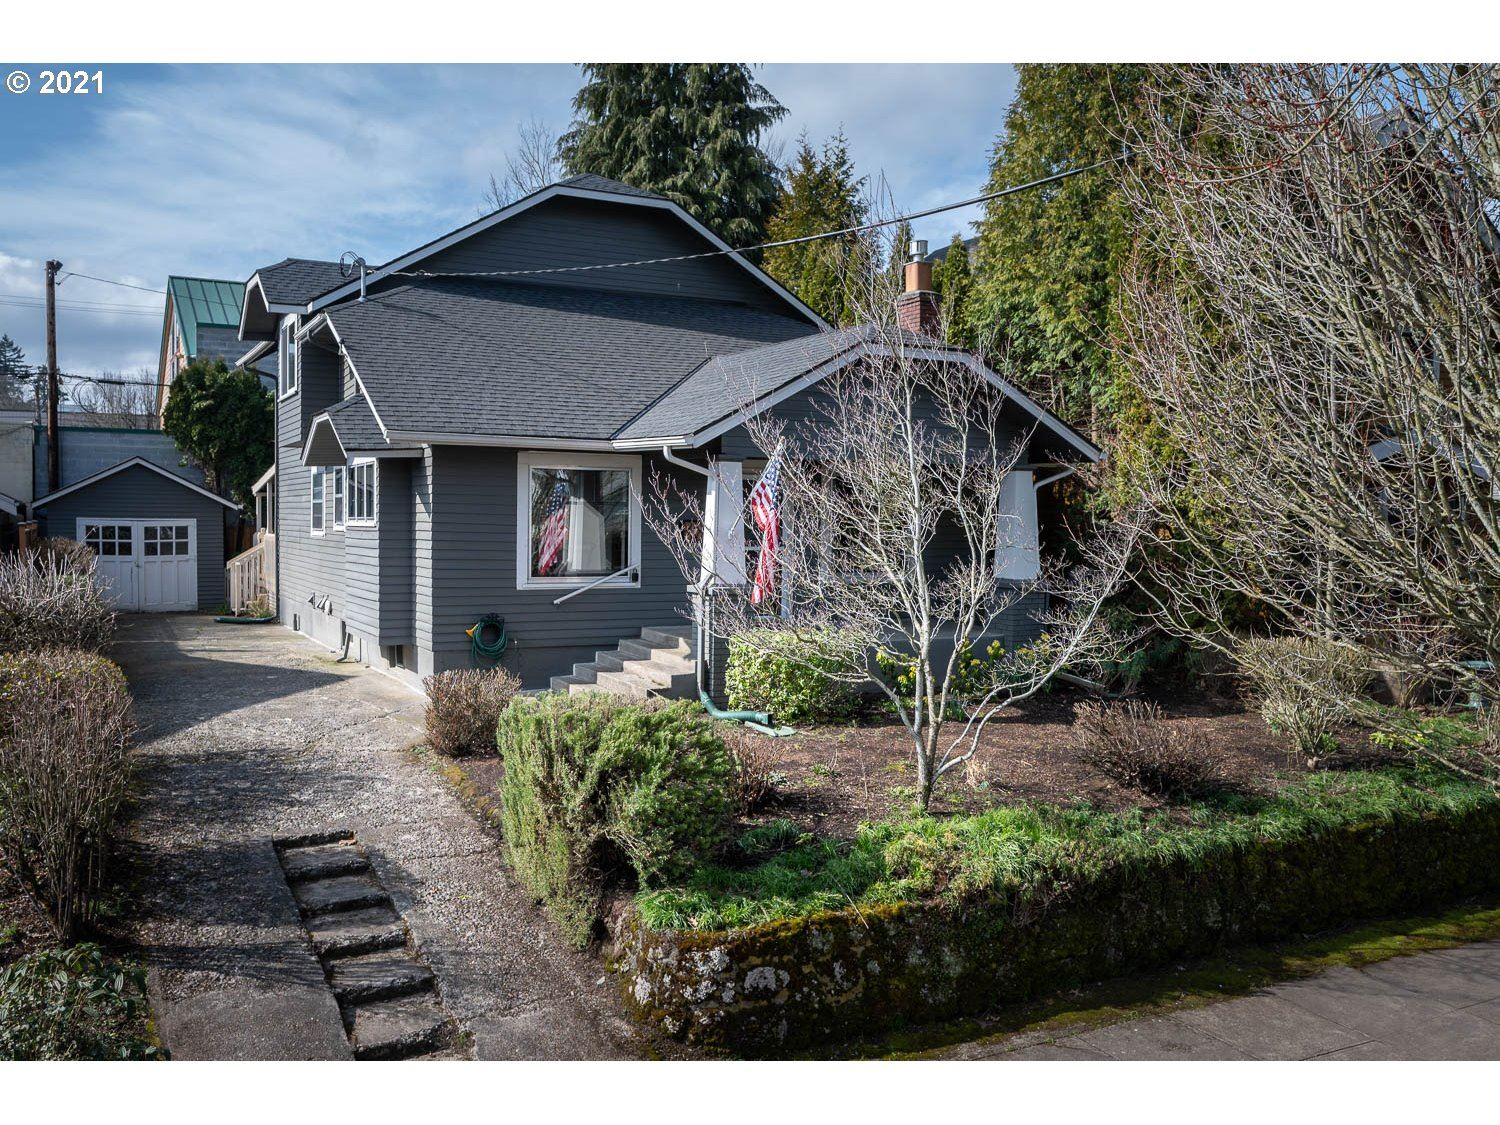 6433 SE 17TH AVE, Portland, OR 97202 - MLS#: 21037984